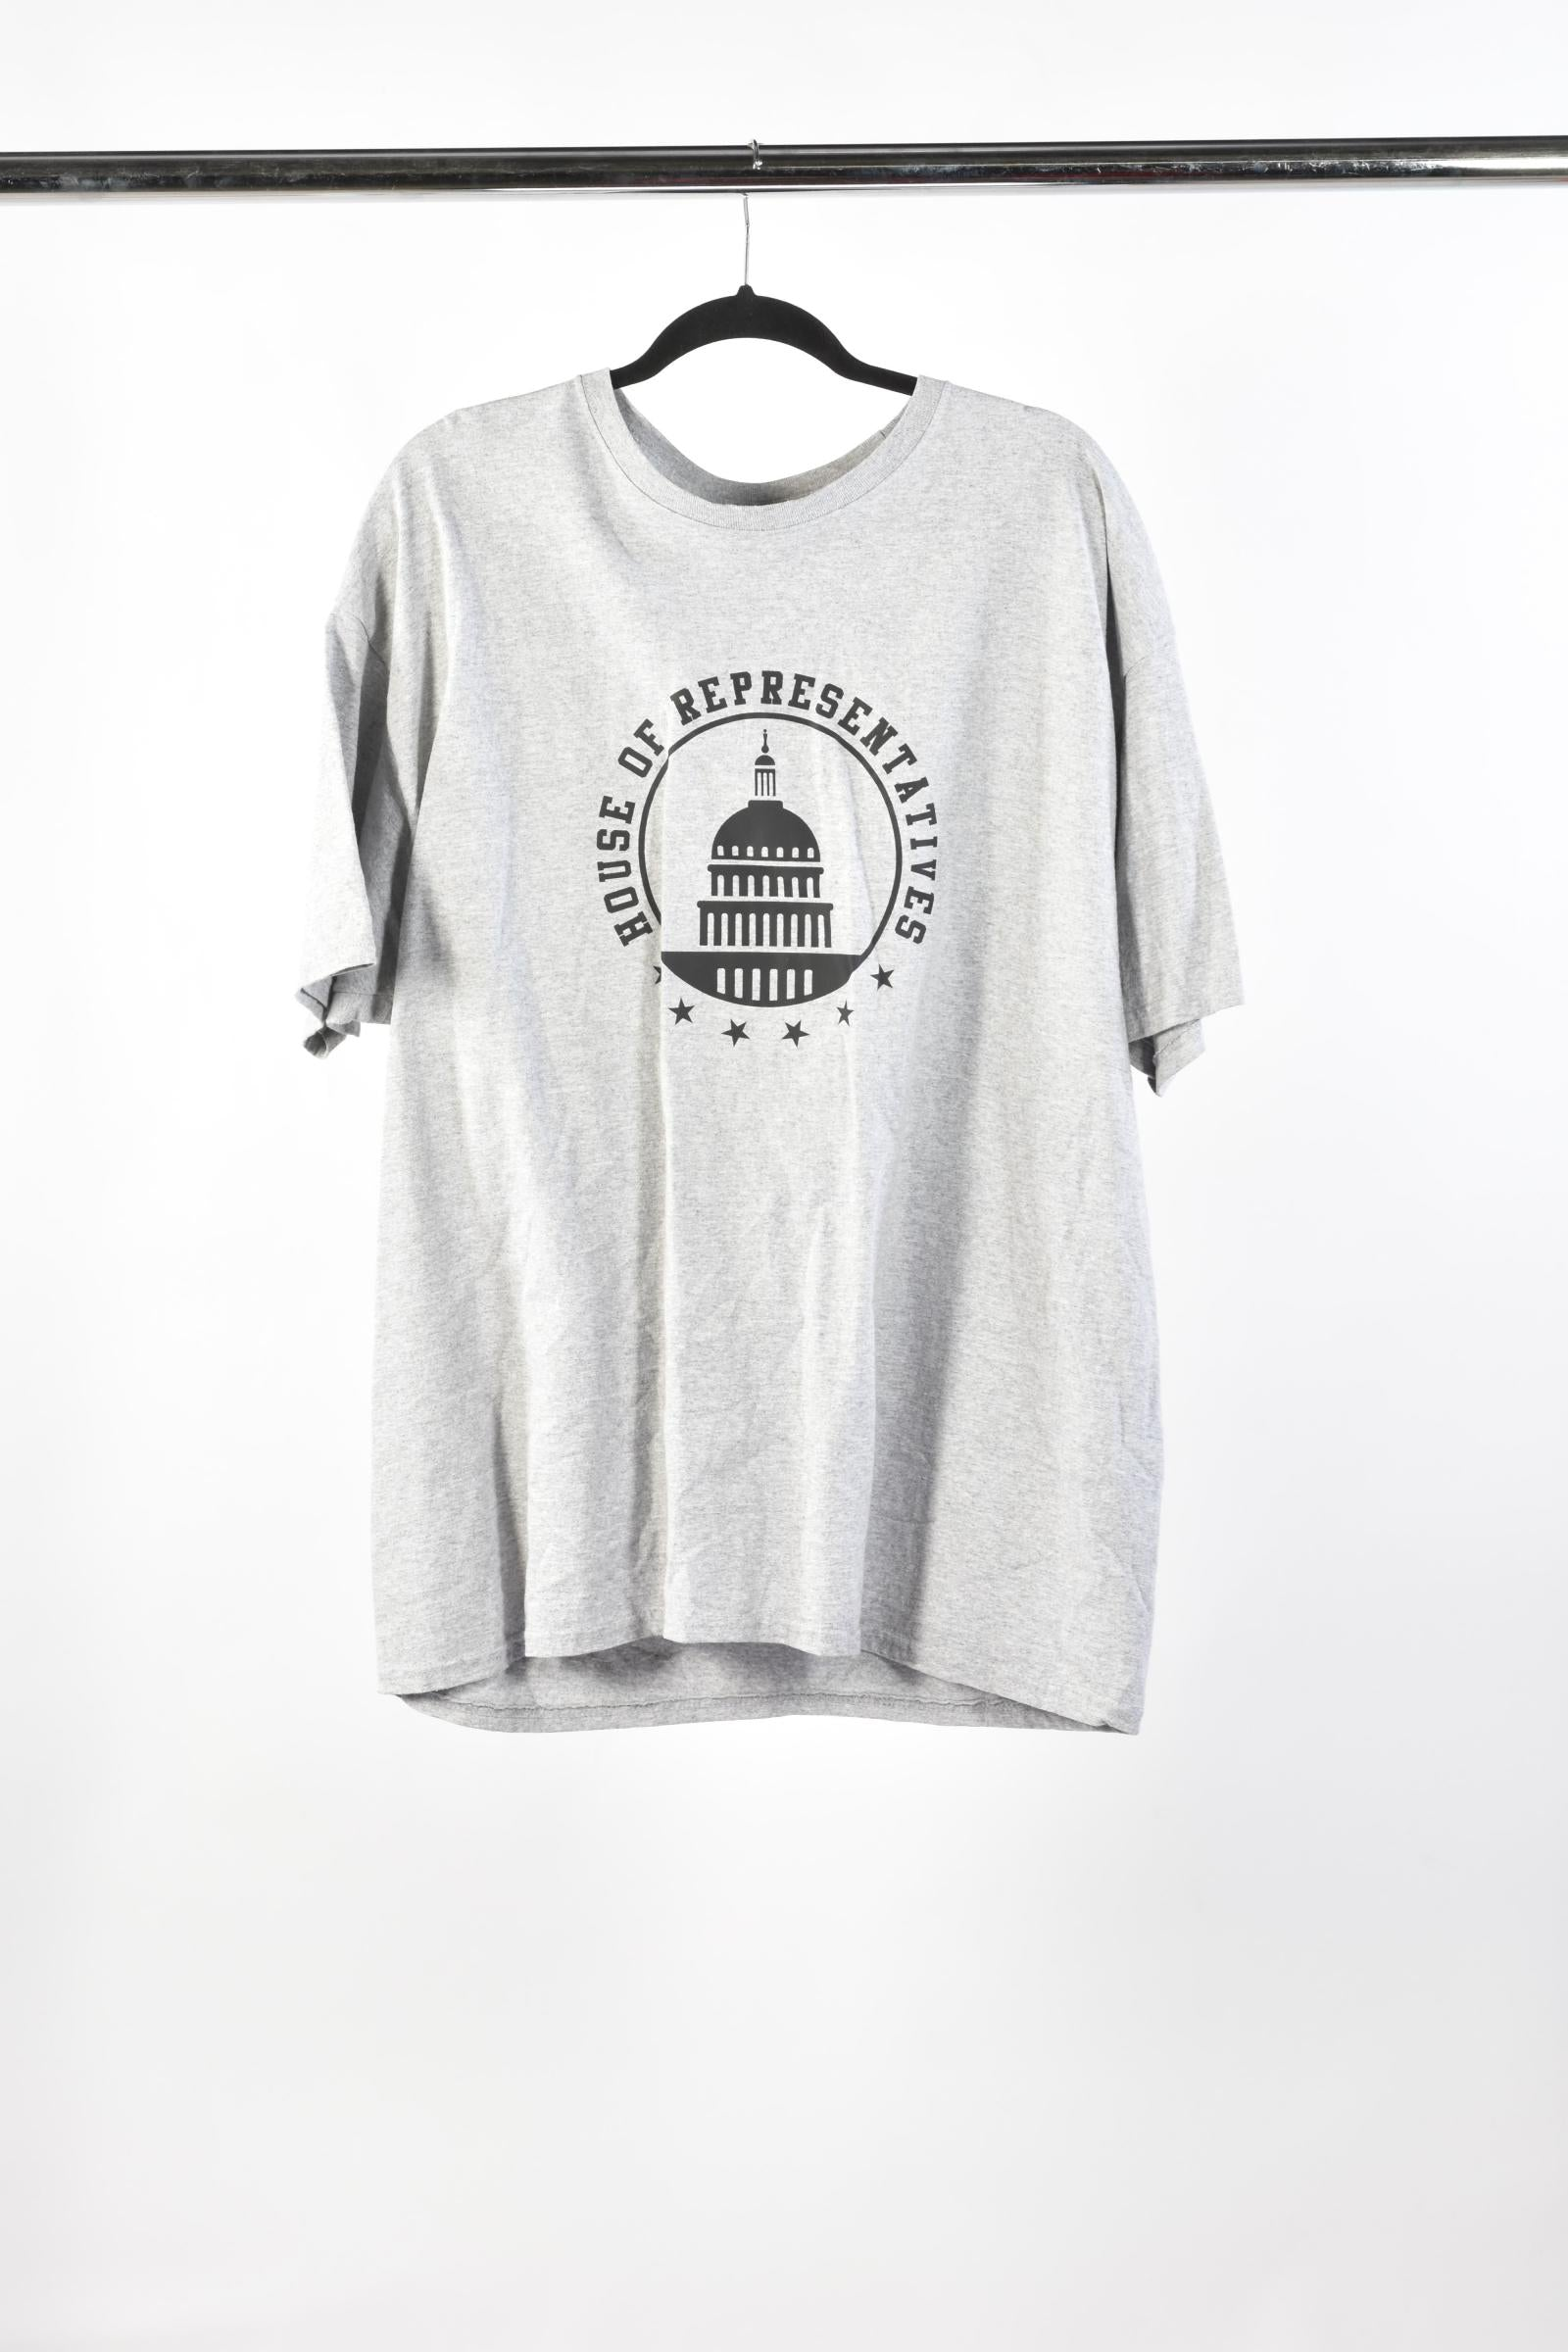 VEEP: House of Representatives Grey T-Shirt